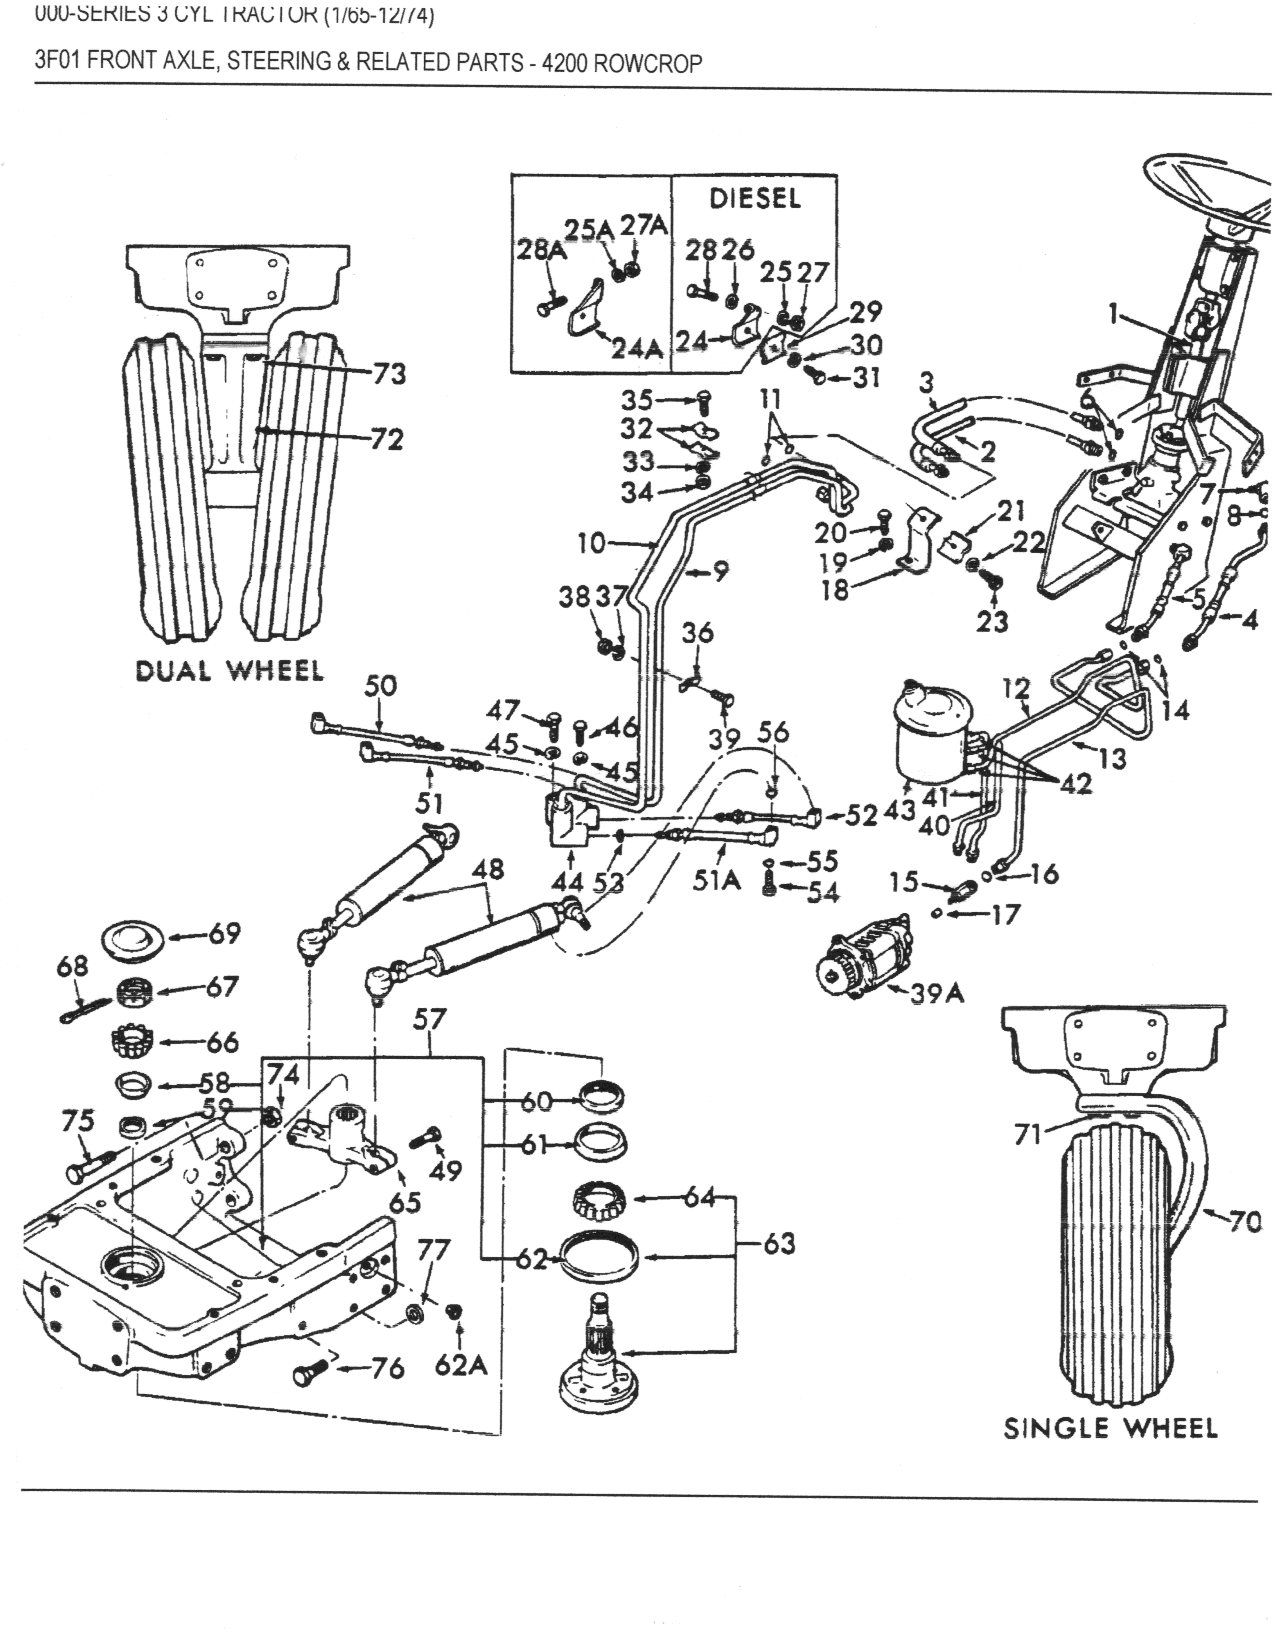 Wiring Diagram For A 1964 Ford 4000 Tractor 4000 Tractor